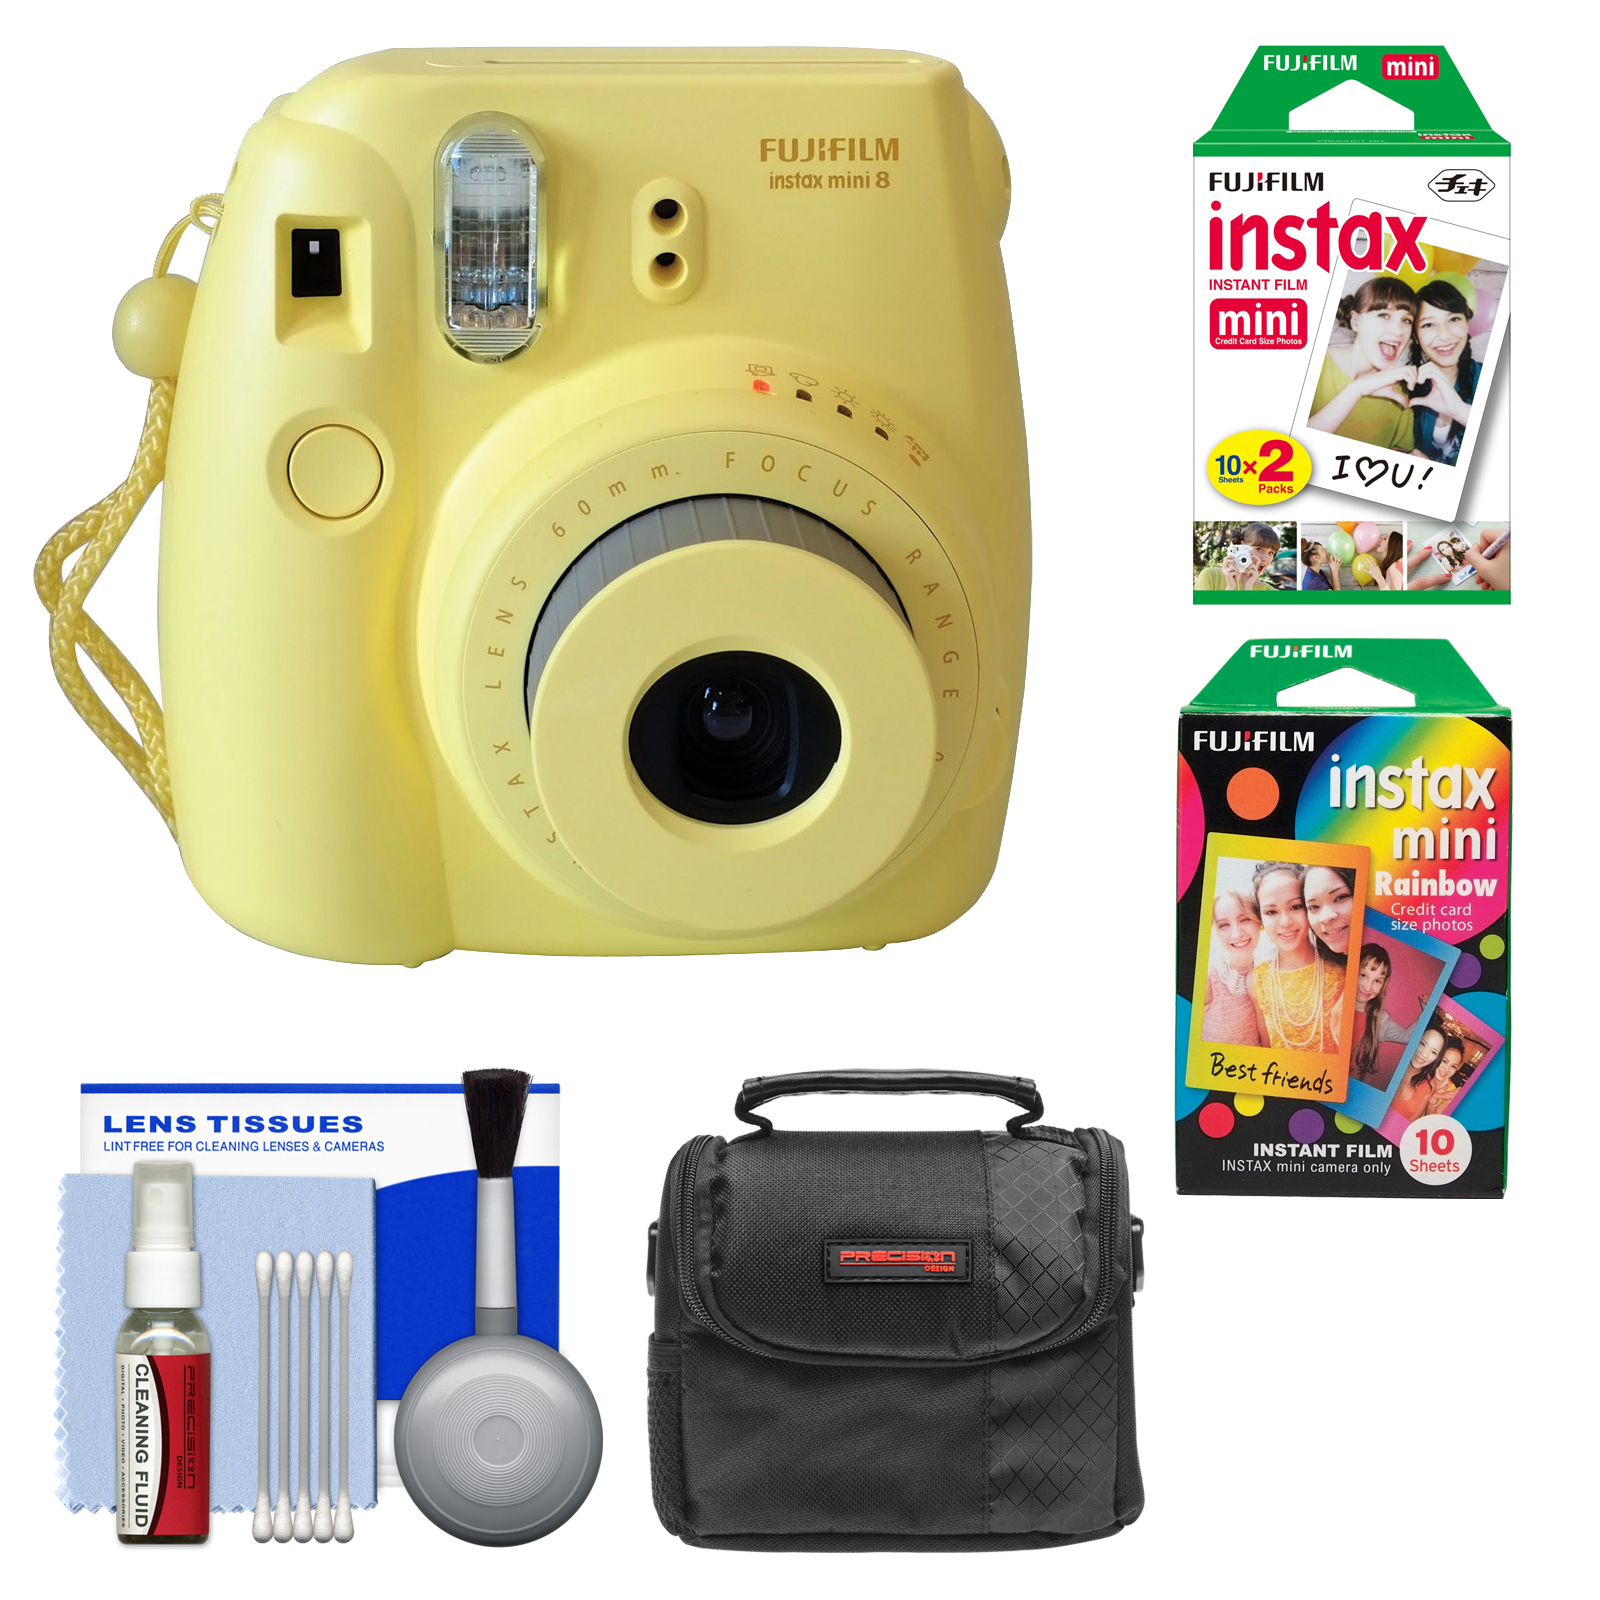 Fujifilm Instax Mini 8 Instant Film Camera (Yellow) with Instant Film & Rainbow Film   Case   Cleaning Kit